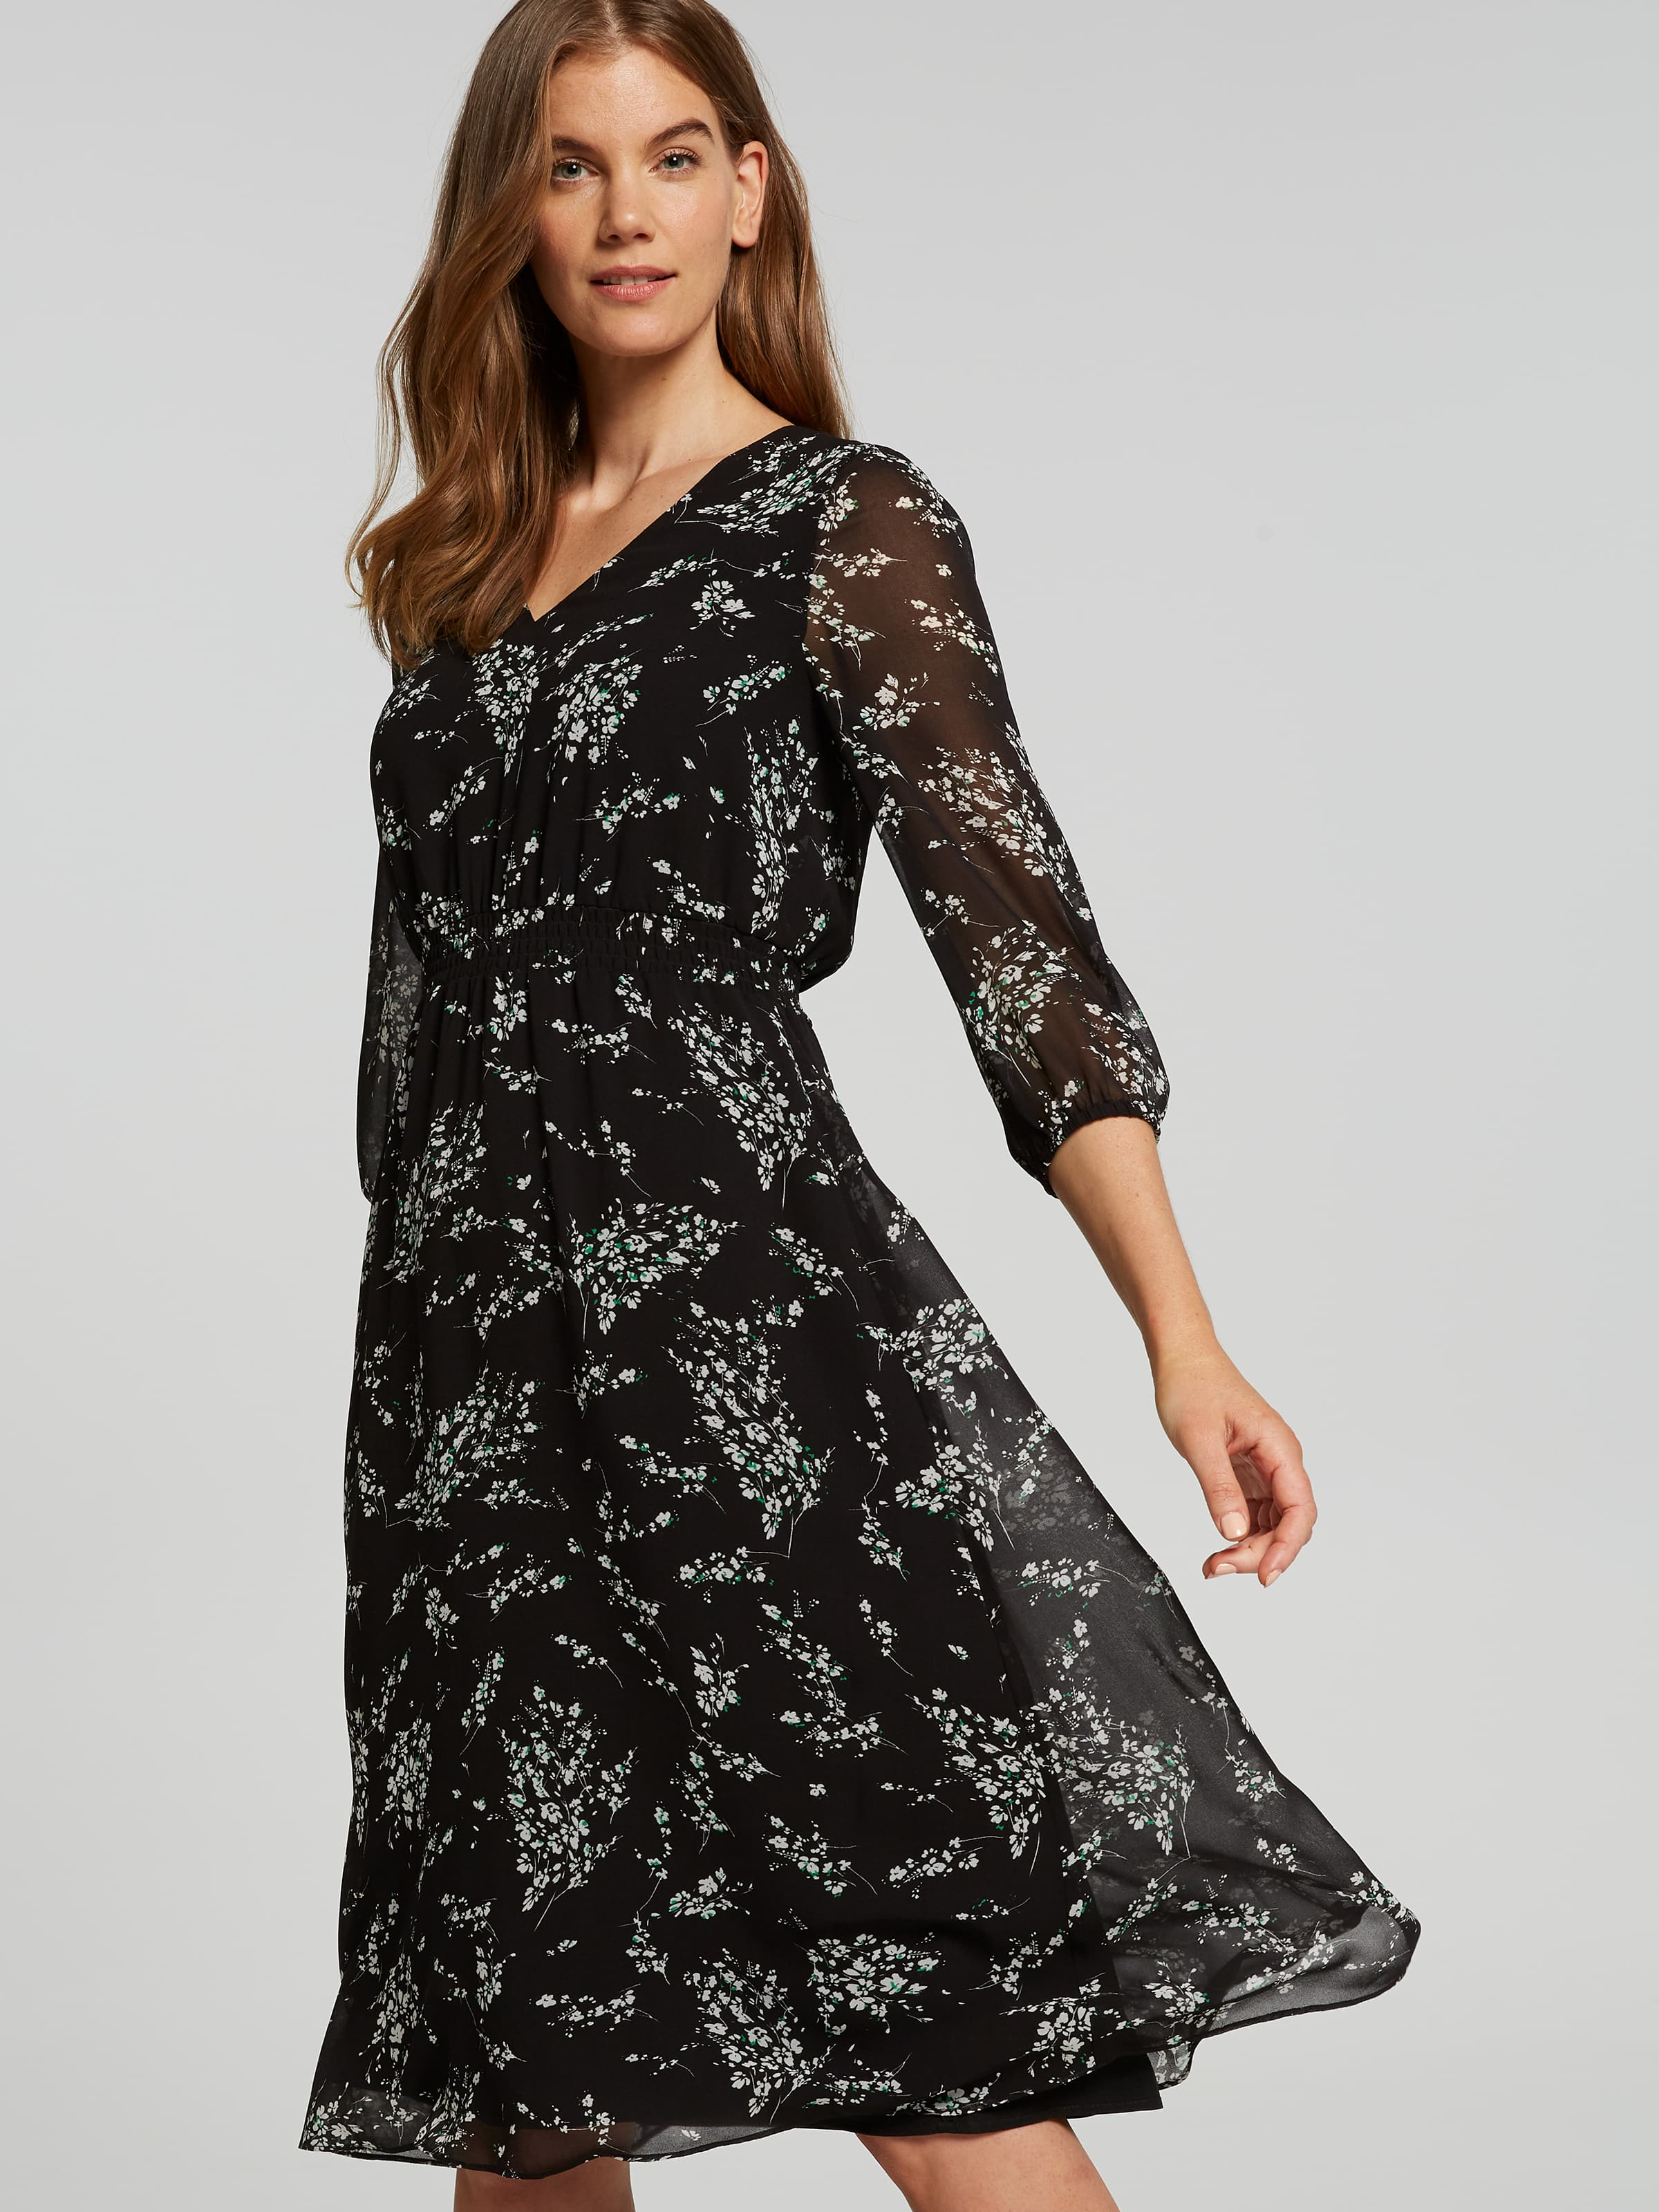 Image of Jacqui E Australia Jacqui E 3/4 Sleeve Dani V Neck Soft Midi Dress